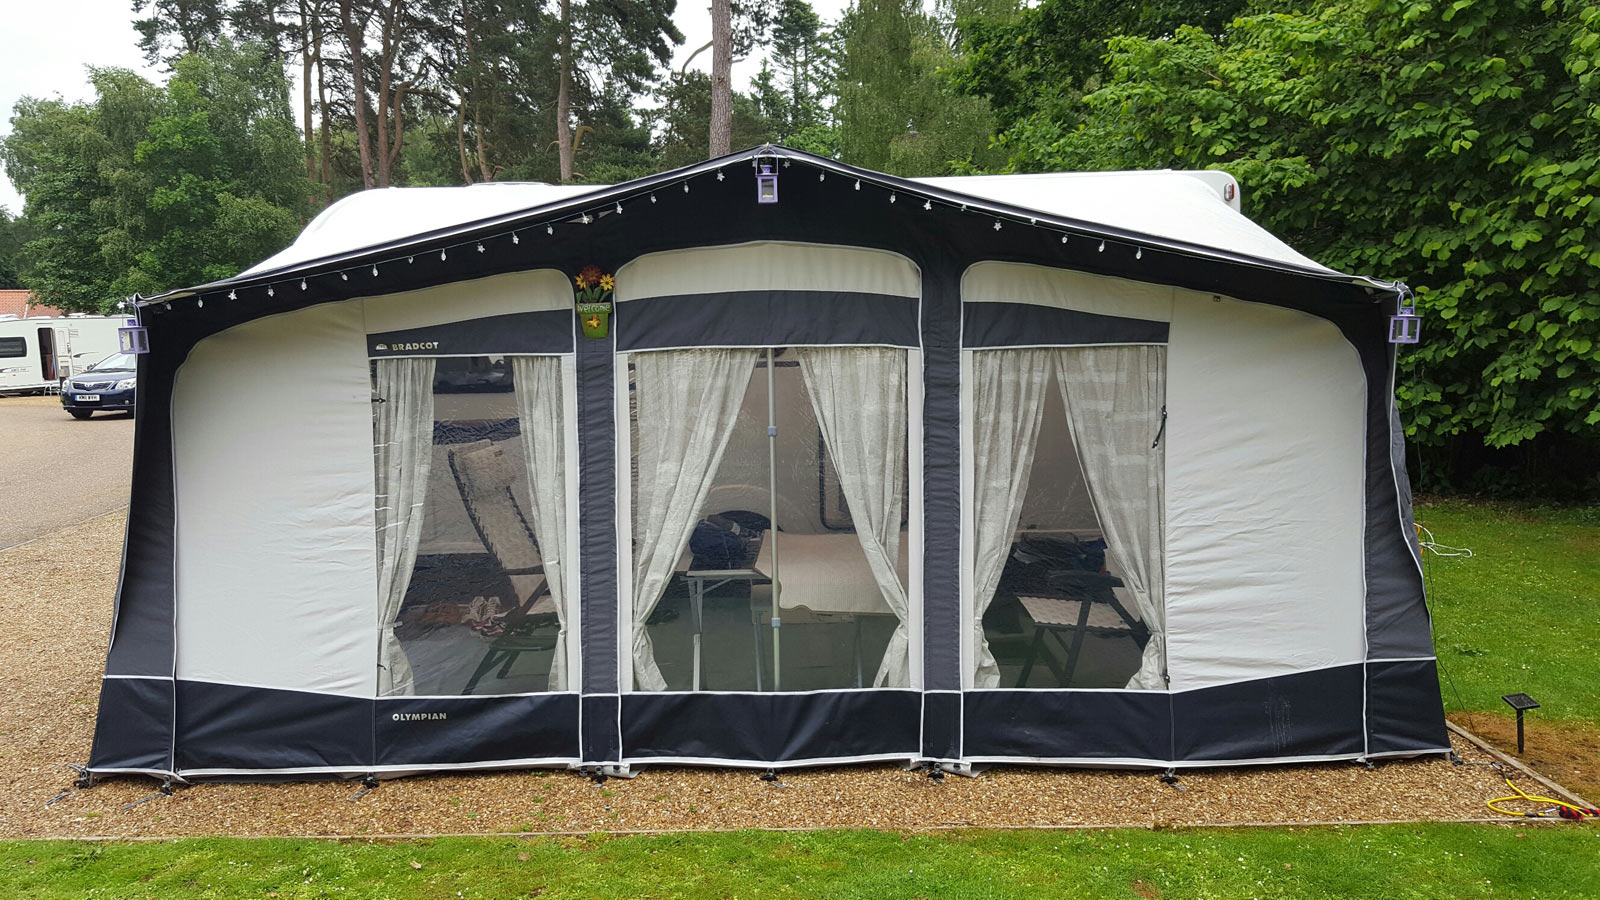 Bradcot Olympian Awning Increased By 2 Sizes